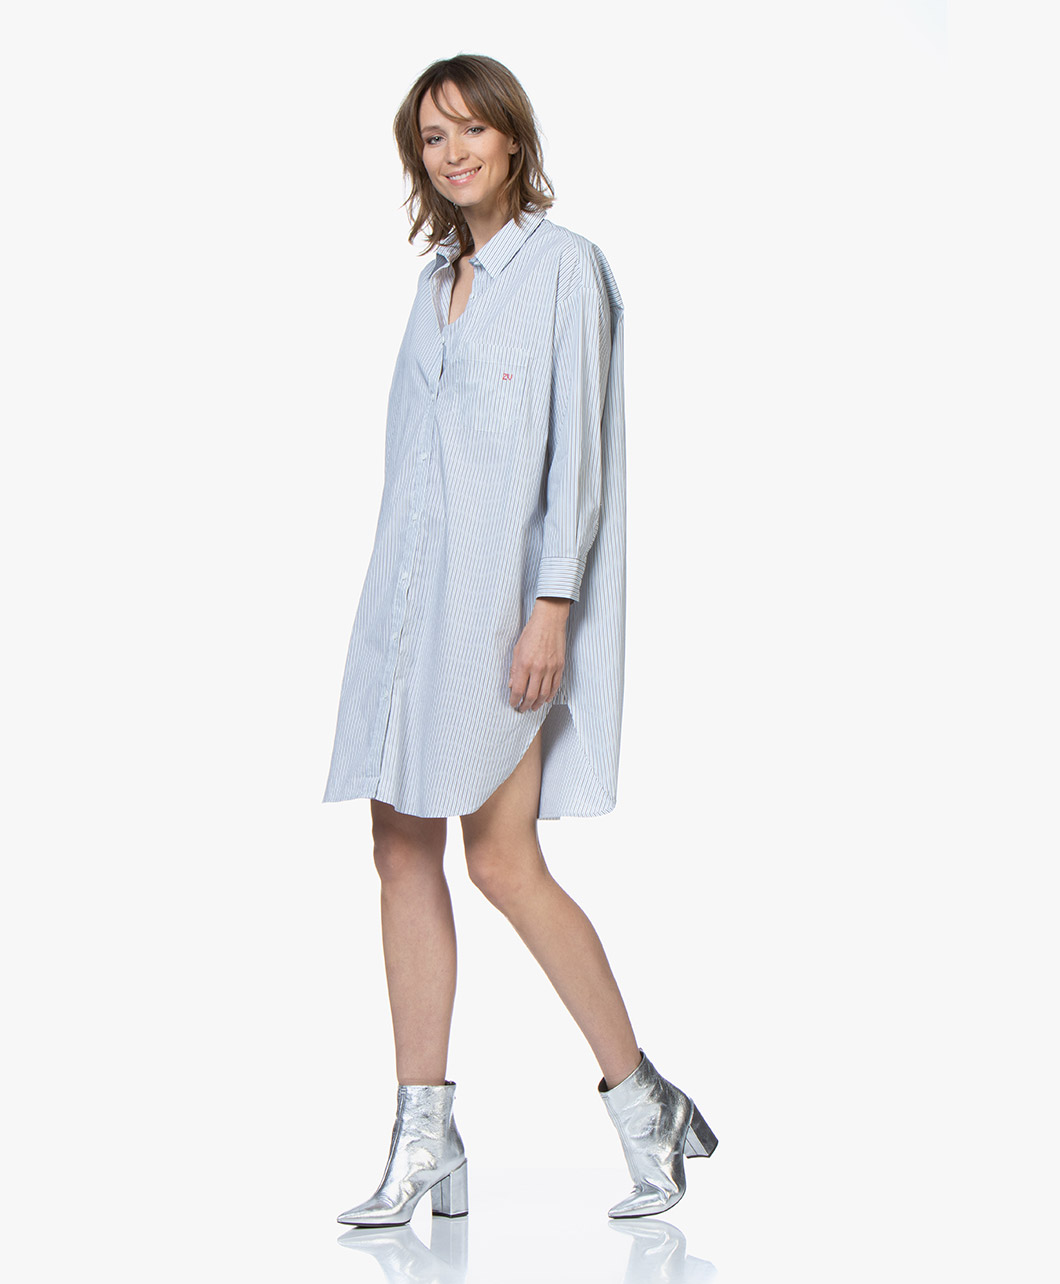 Zadig & Voltaire Resley Striped Oversized Shirt Dress - White/Blue/Grey -  resley rayee | shcc0401f bleu de gris